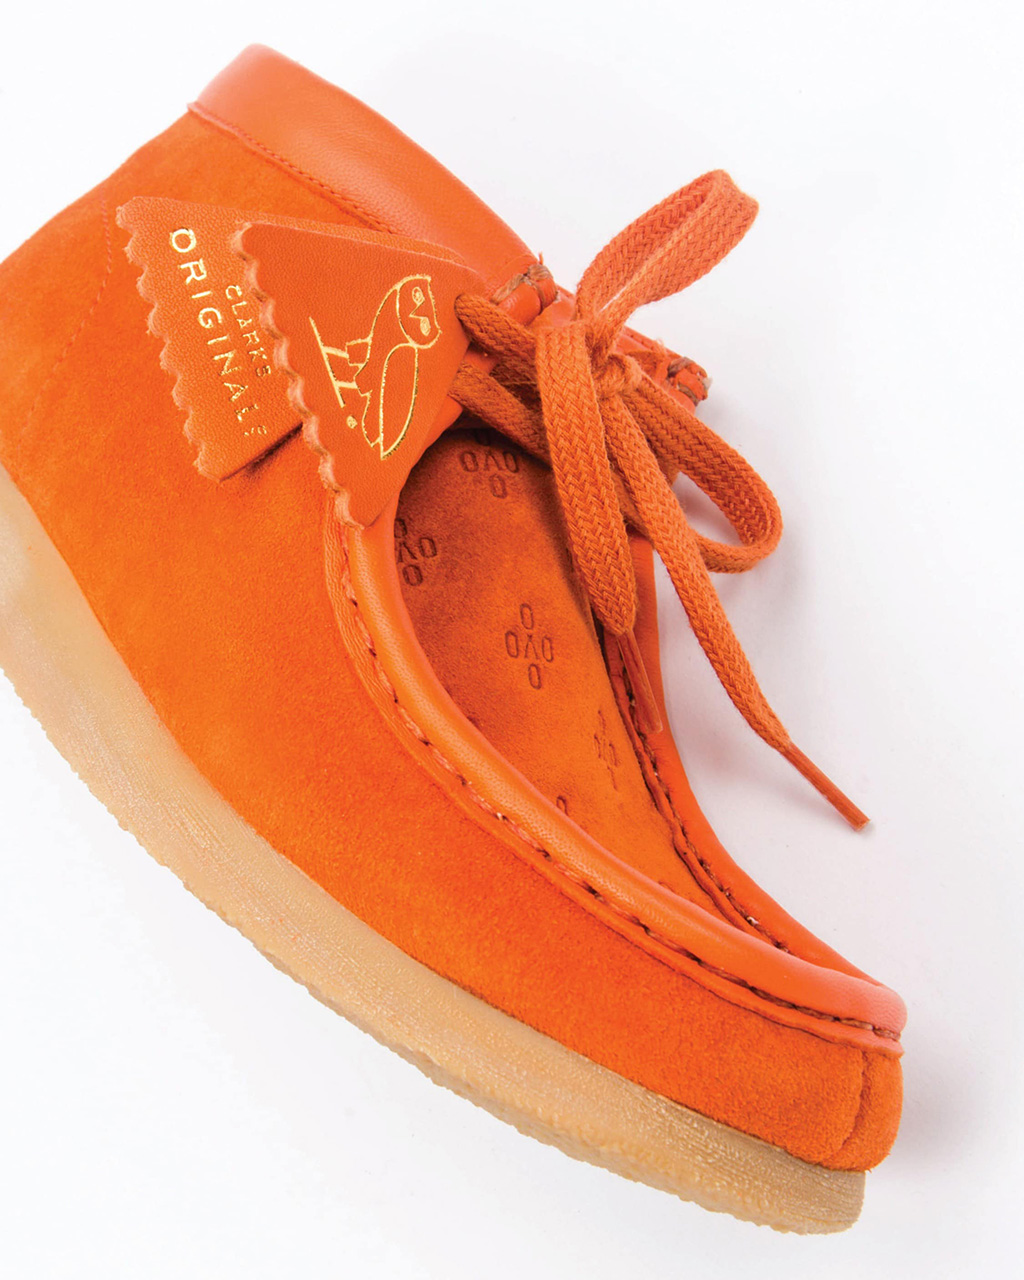 OVO x Clarks Wallabe Made in Italy Collection Orange